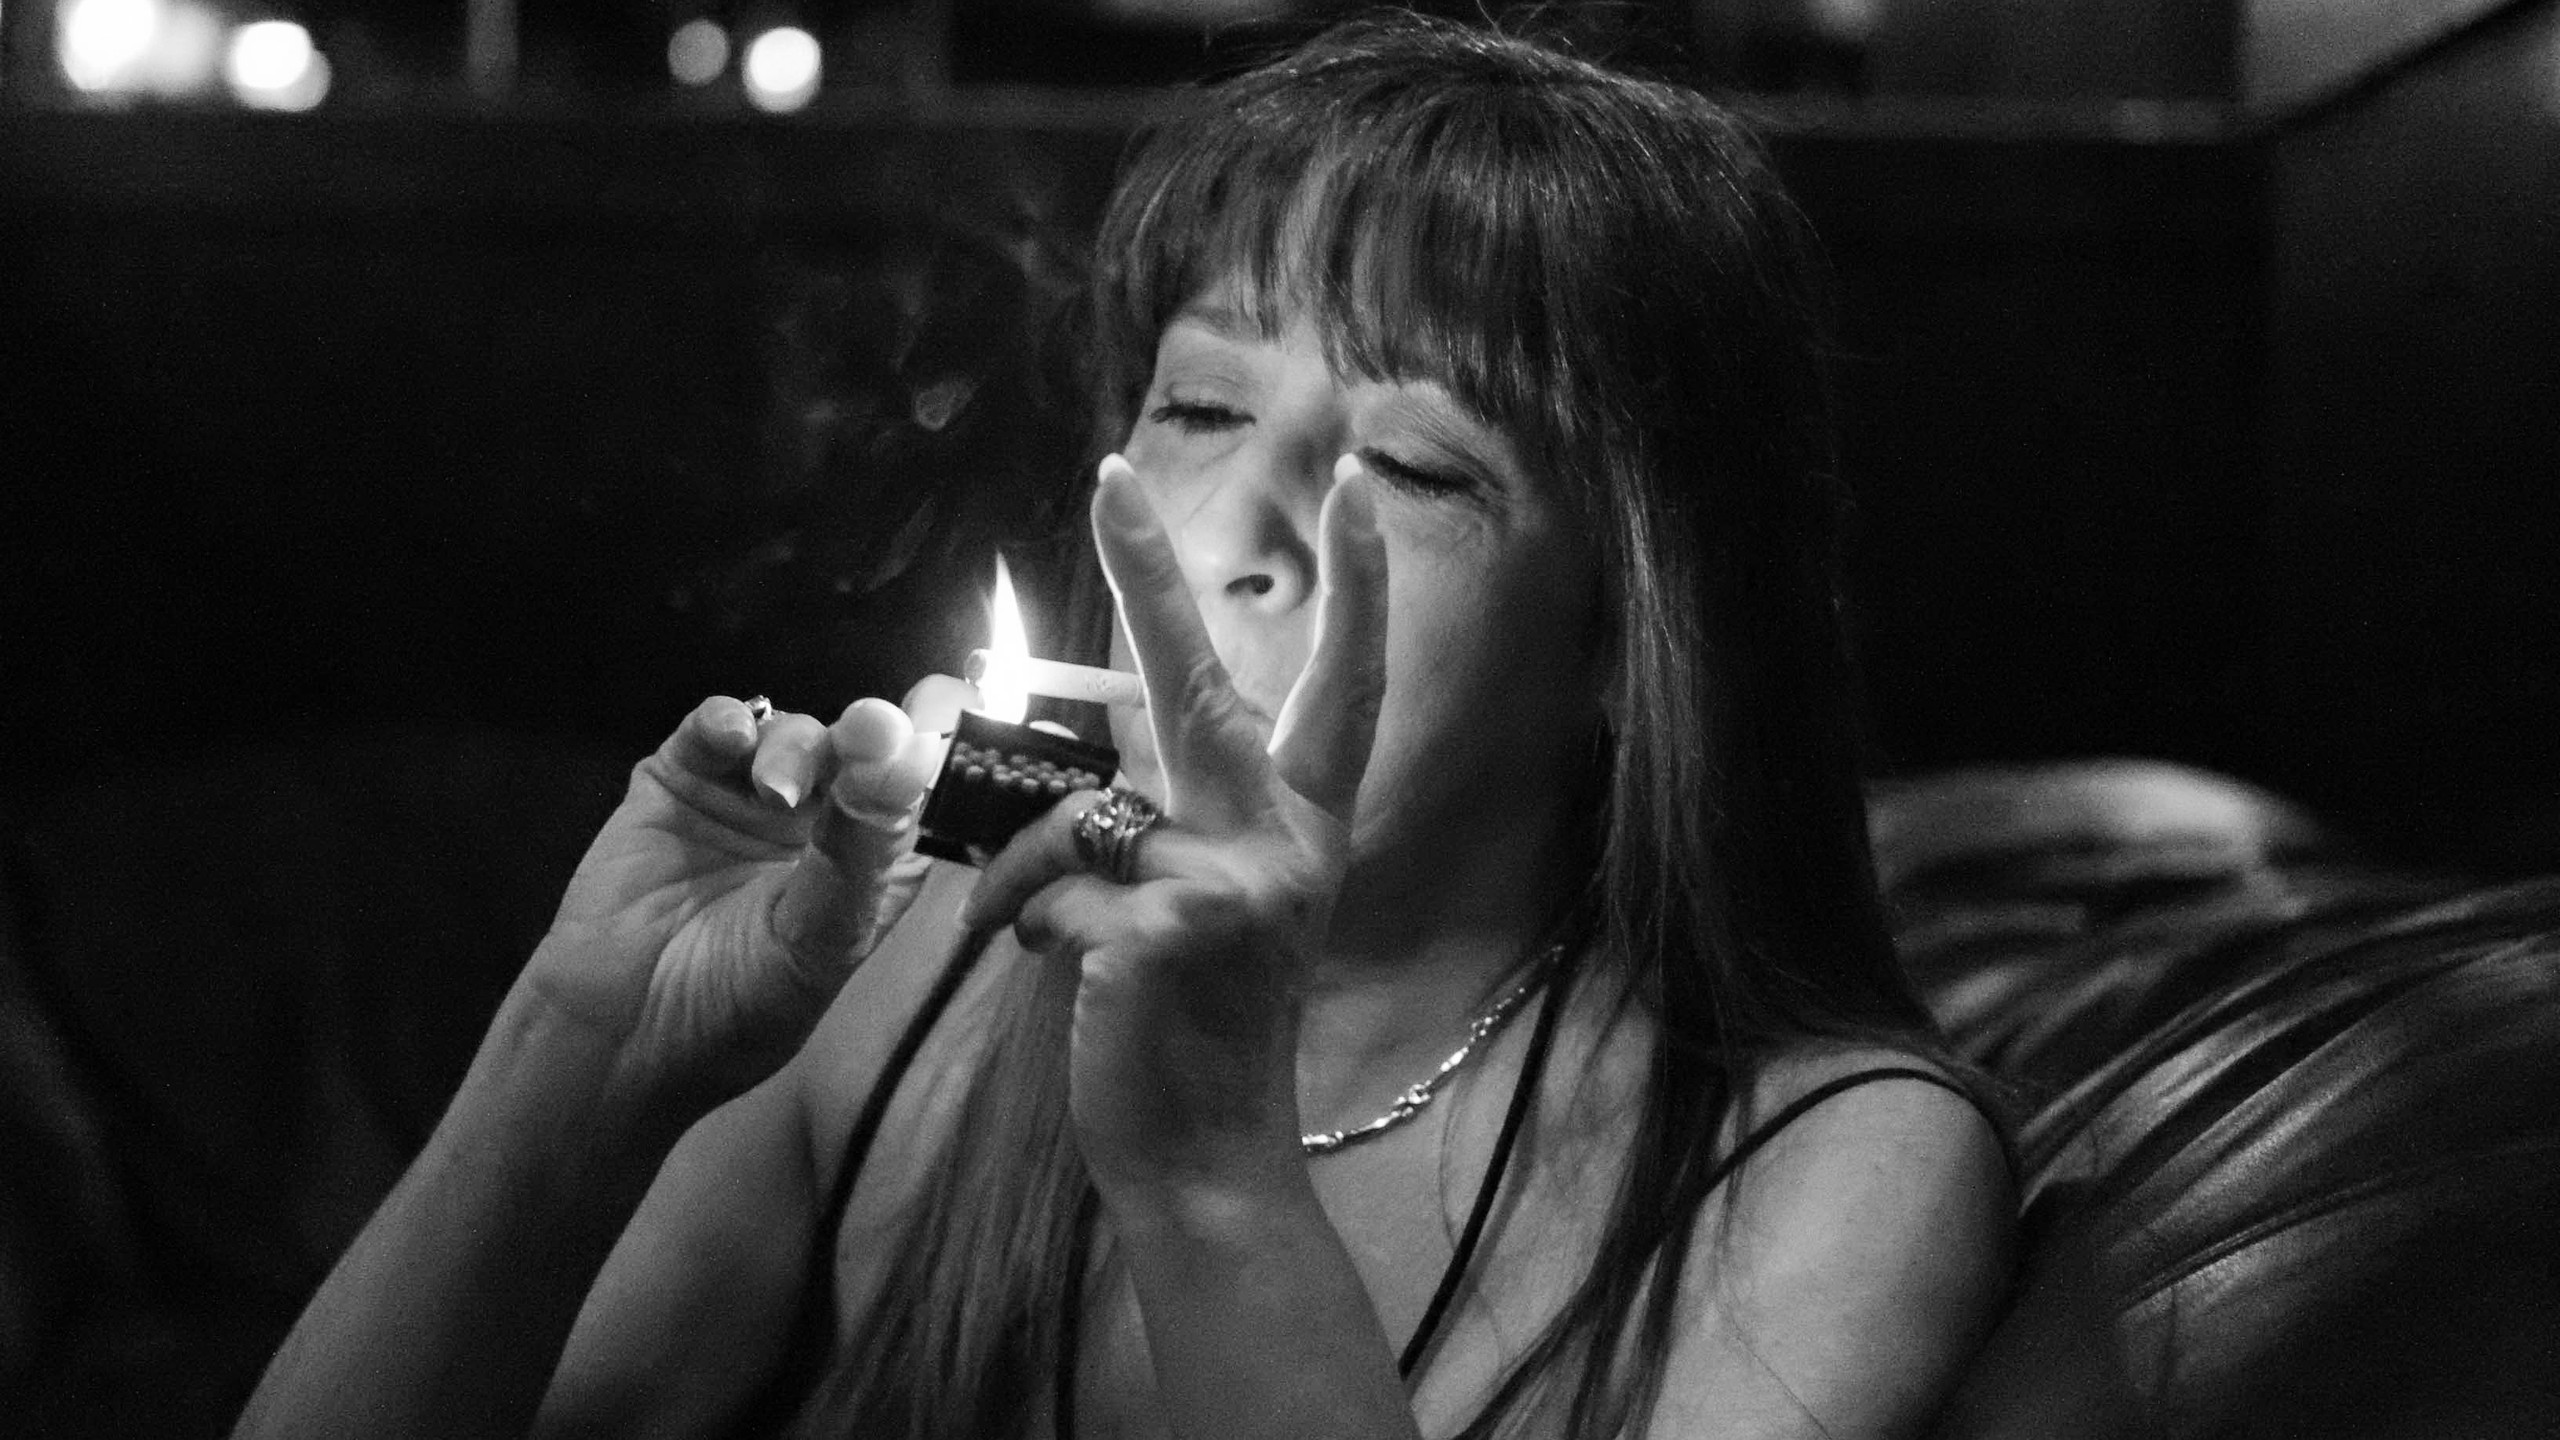 Charleen uses a Tattletale Lounge matchbook to light her cigarette while I interview her in one of the club's private VIP rooms.